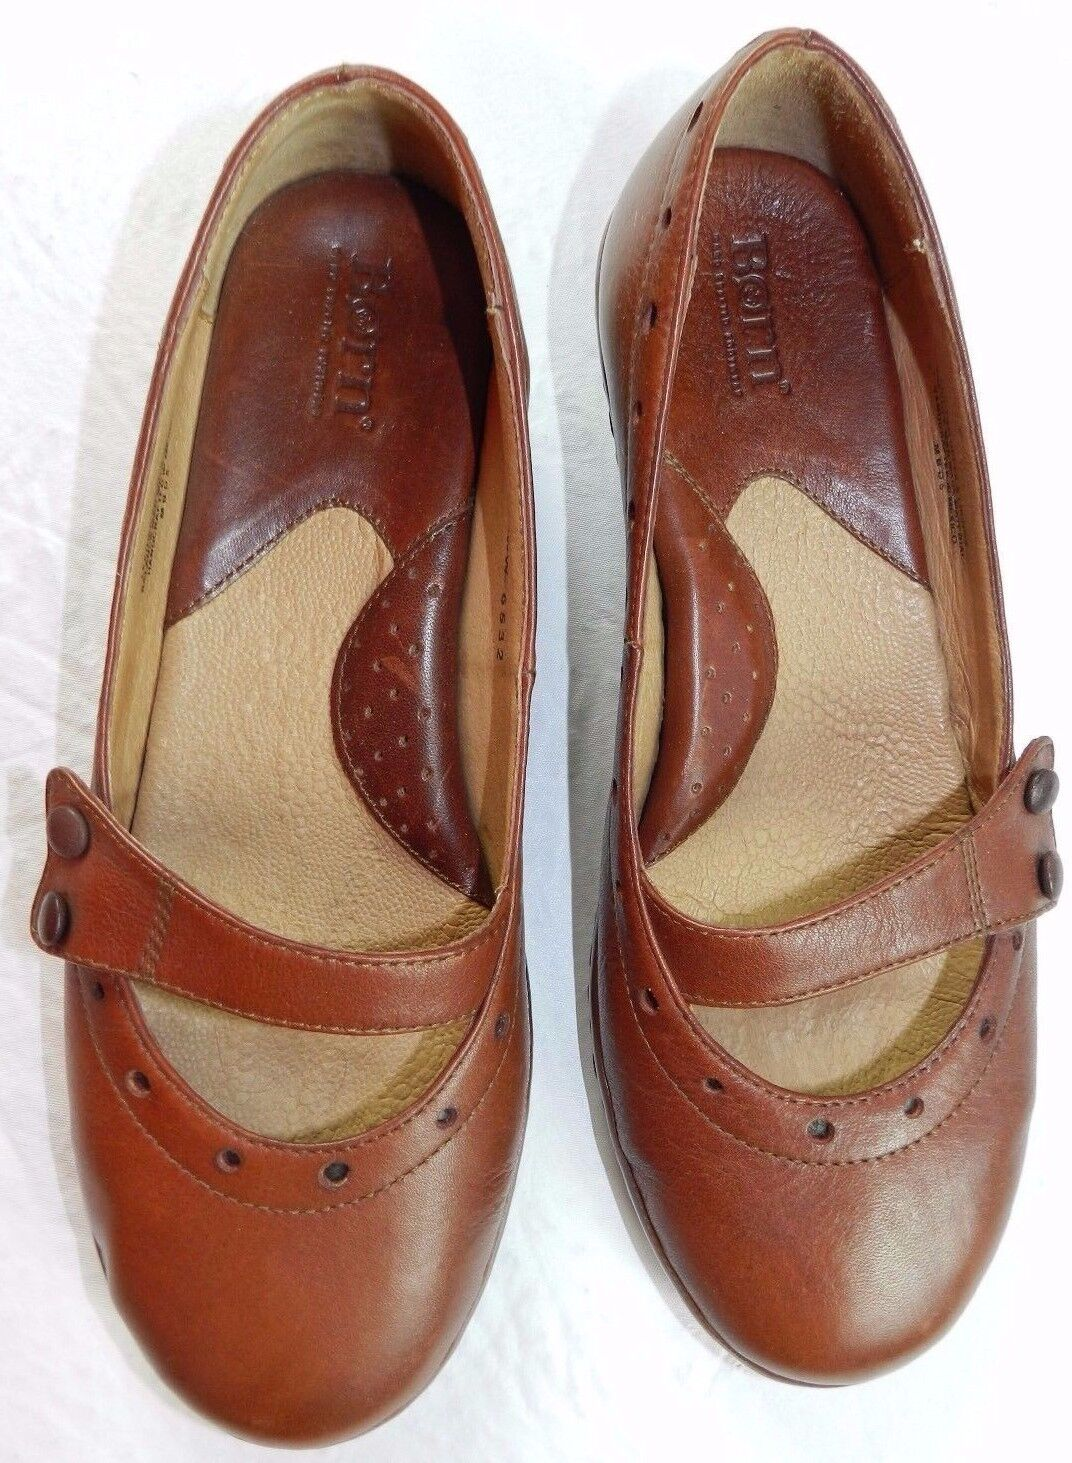 WOMENS brown slip on Mary Jane SHOES = BORN = SIZE 8/39 = gz17